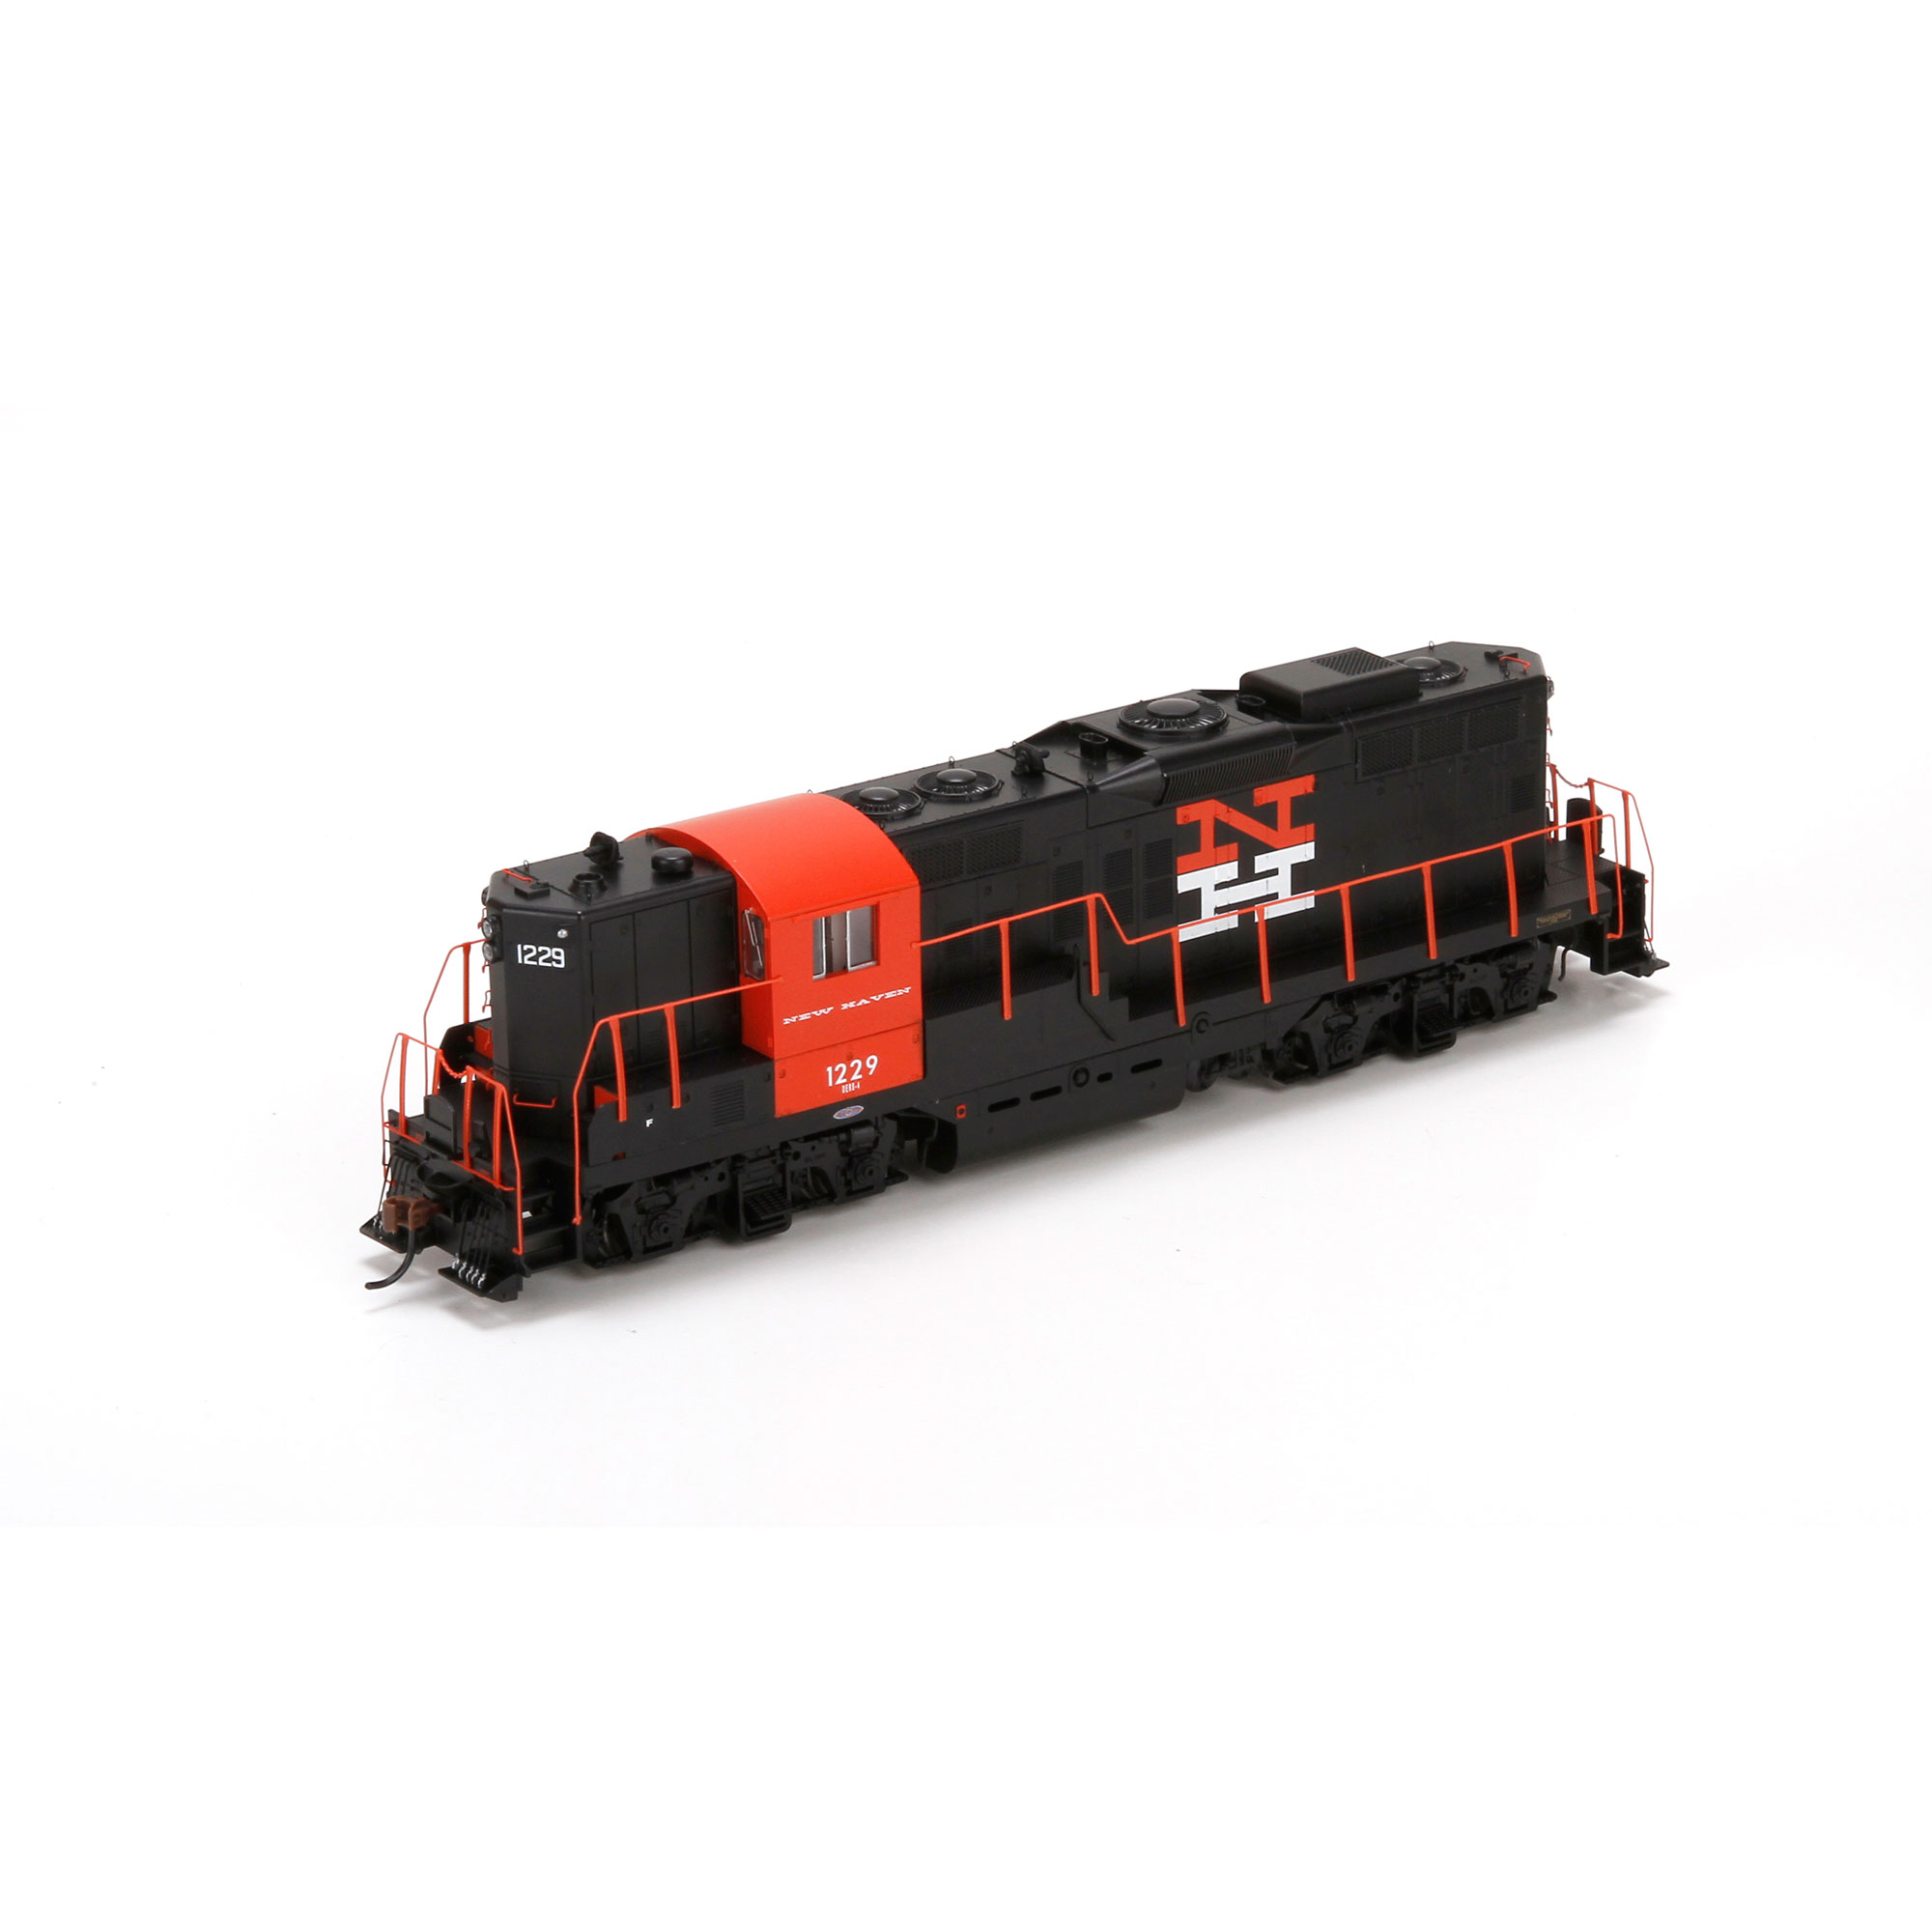 Athearn Genesis Wiring Diagram Trusted Diagrams Ho Locomotive Gp9 Phase Iii W Dcc Sound Nh 1229 Athg62923 Trains Parts